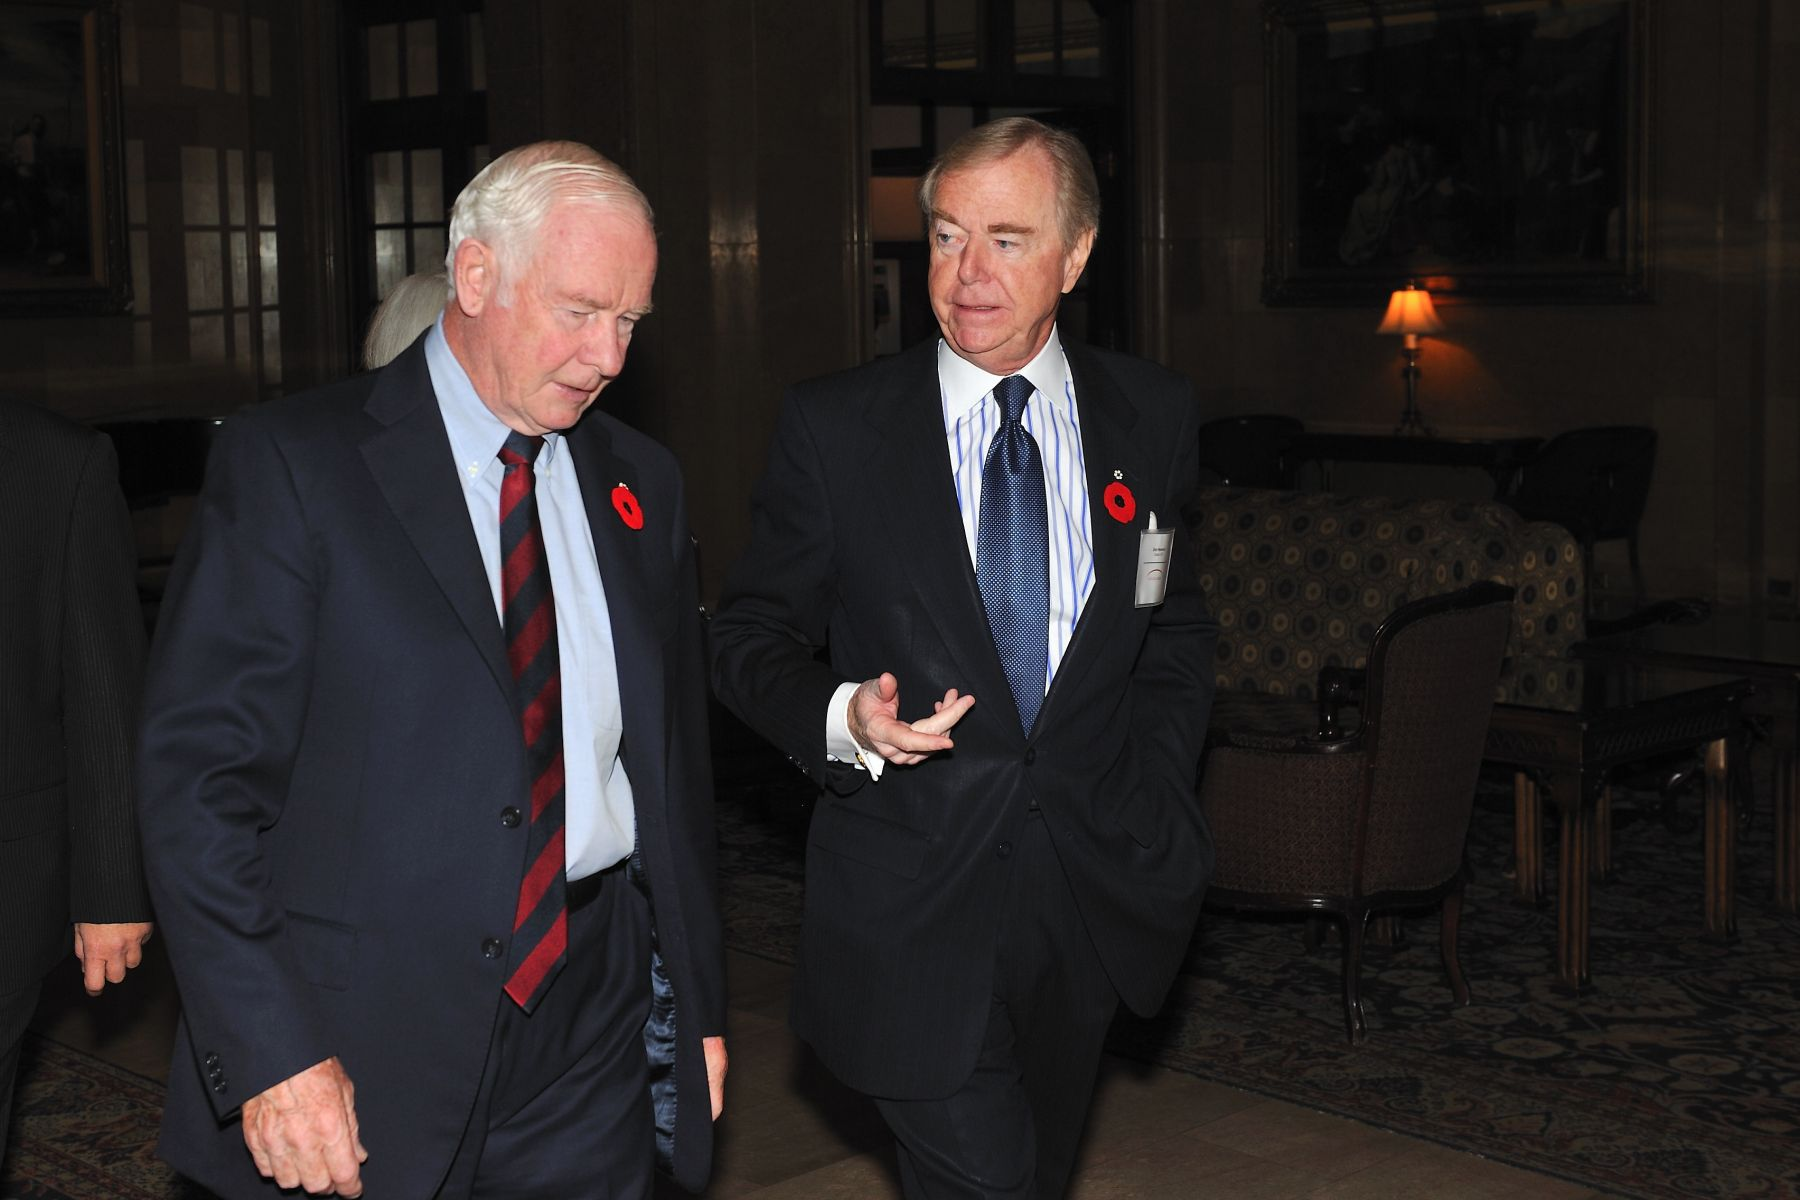 On November 2, 2011, the Governor General delivered the opening remarks at The Canada-U.S. Partnership: Enhancing the Innovation Ecosystem conference, in Ottawa. Mr. Don Newman, Canada 2020 Chair, welcomed His Excellency upon his arrival.